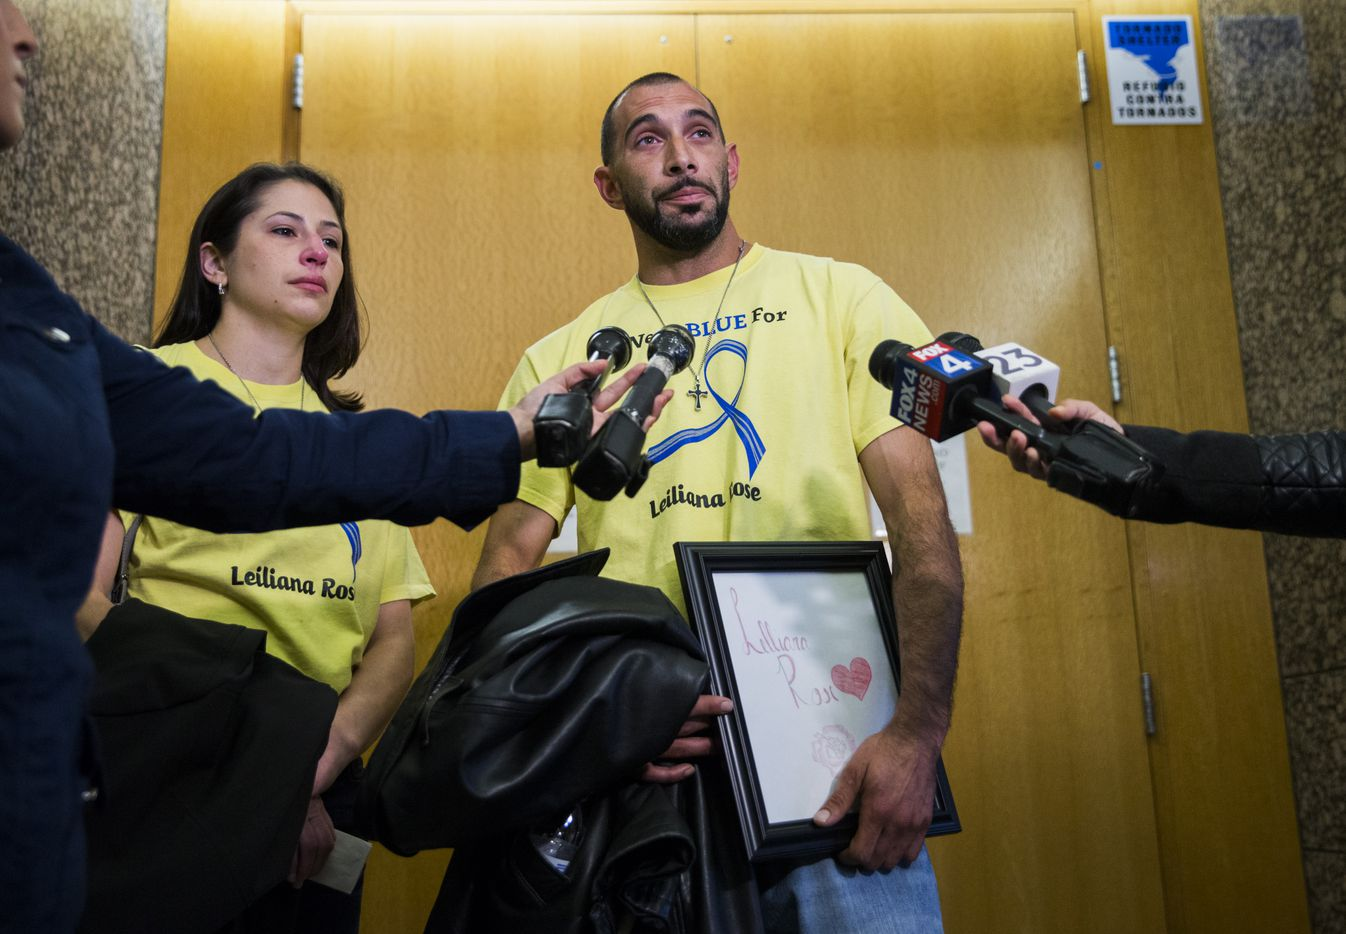 Brian Maker, father of Leiliana Wright, and his sister Gina Clement spoke to reporters after Charles Phifer was found guilty Monday of capital murder in the 4-year-old's March 2016 beating death.